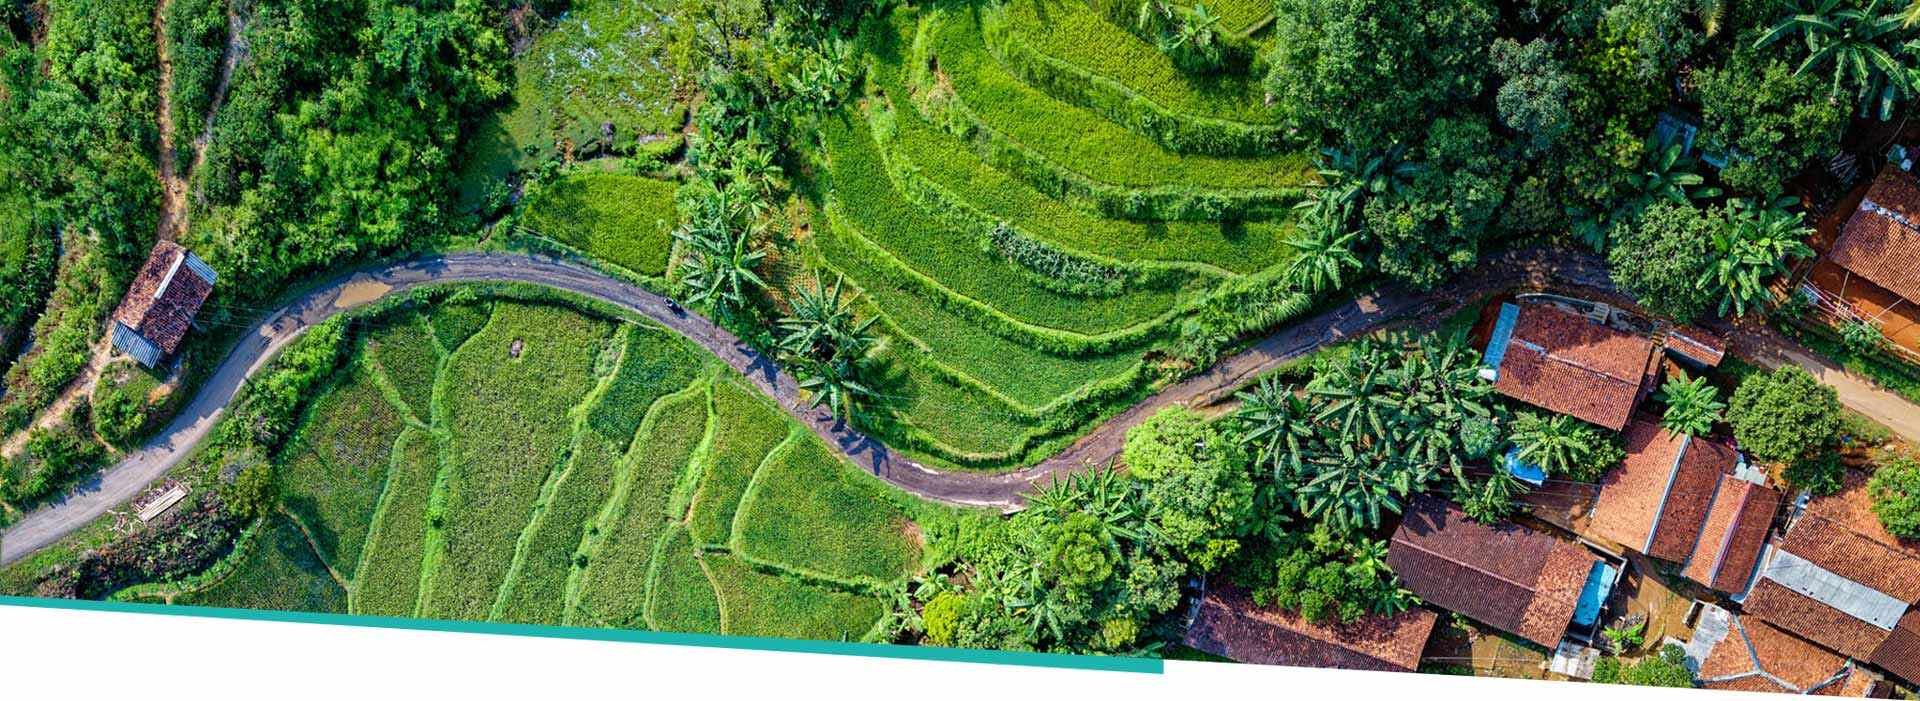 aerial view showing Vietnam bamboo production farm